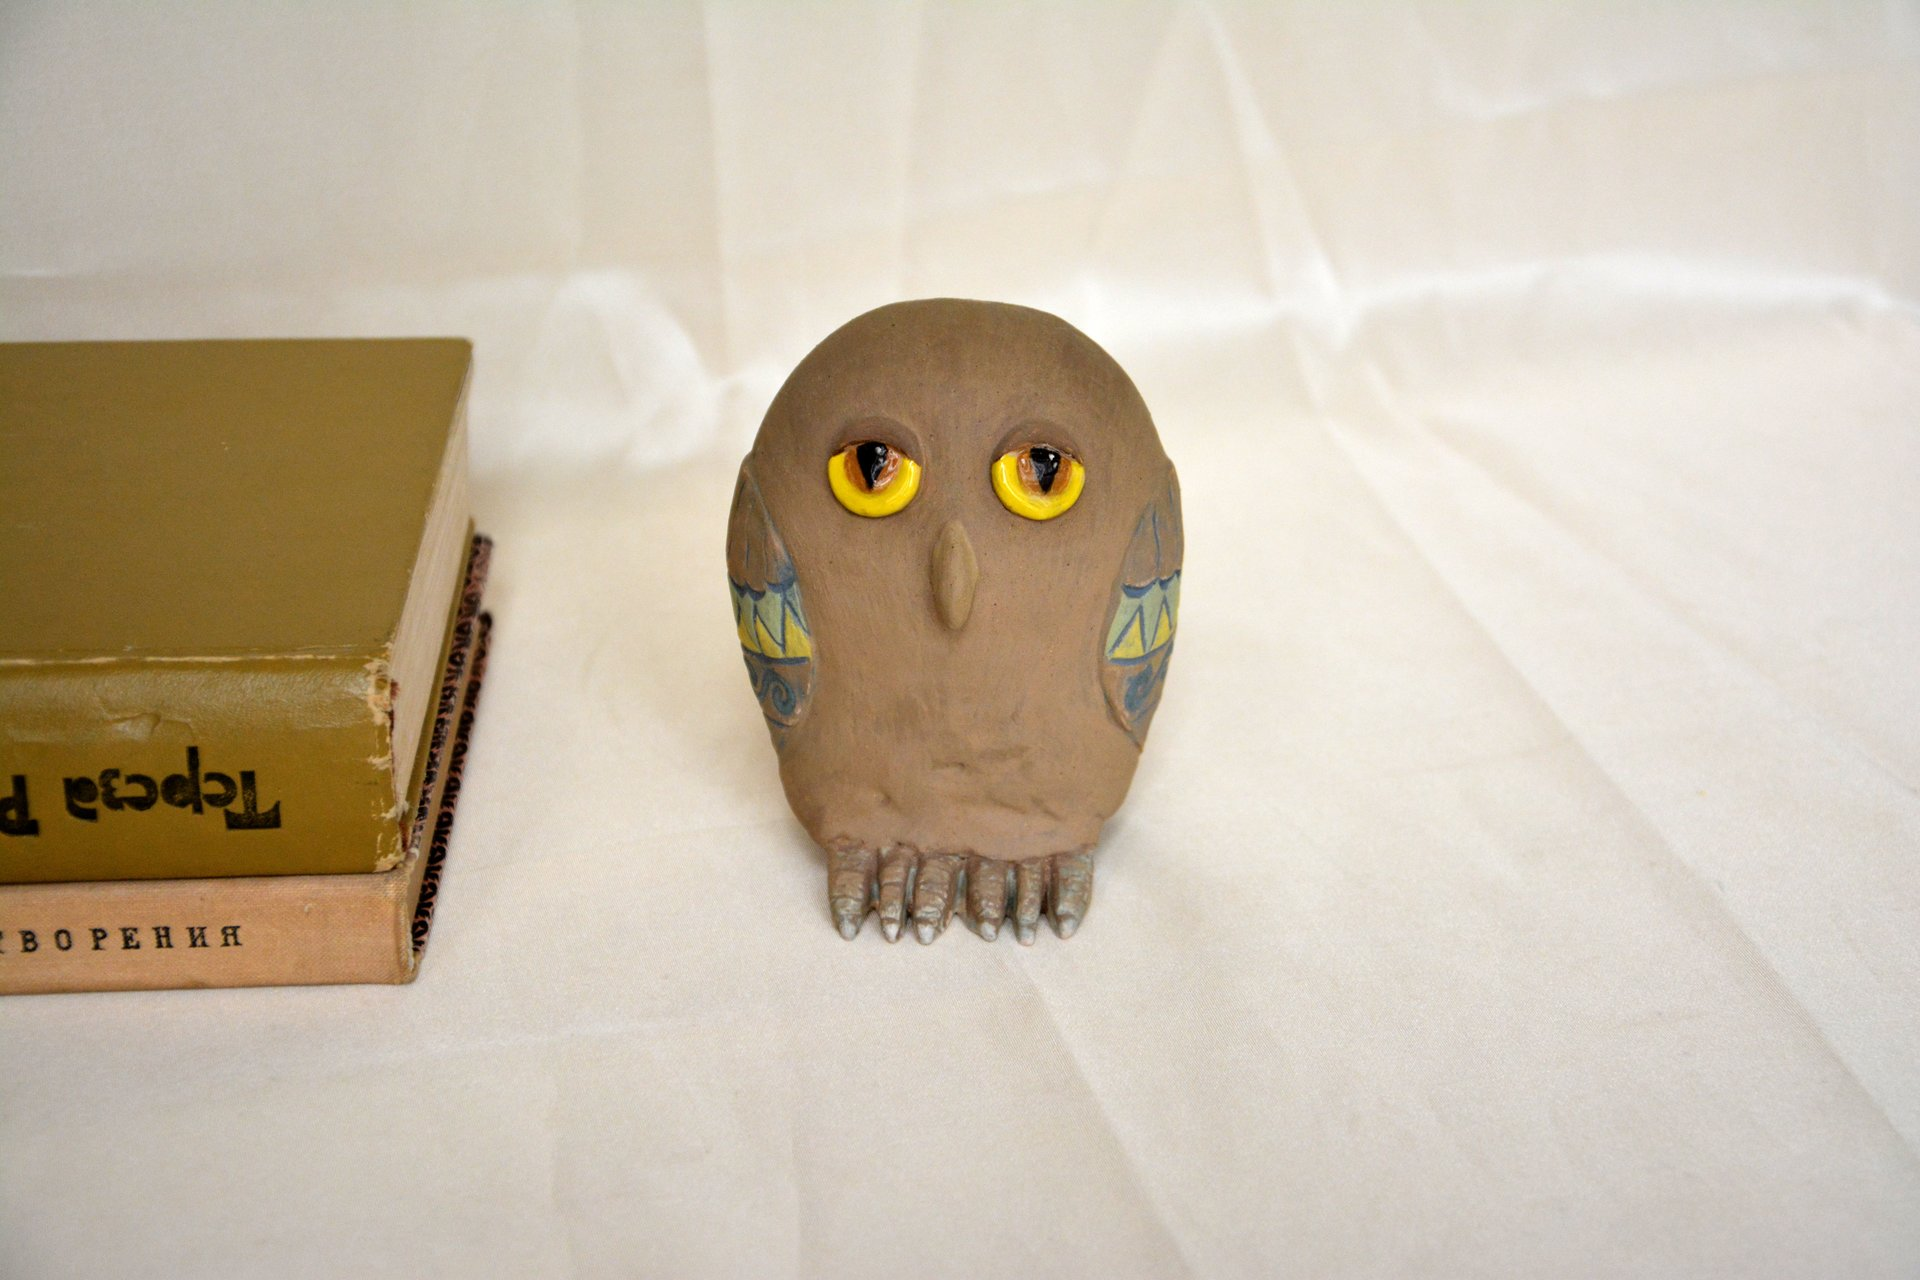 Owl of Constellation Libra - Animals and birds, height - 10 cm, photo 1 of 2.